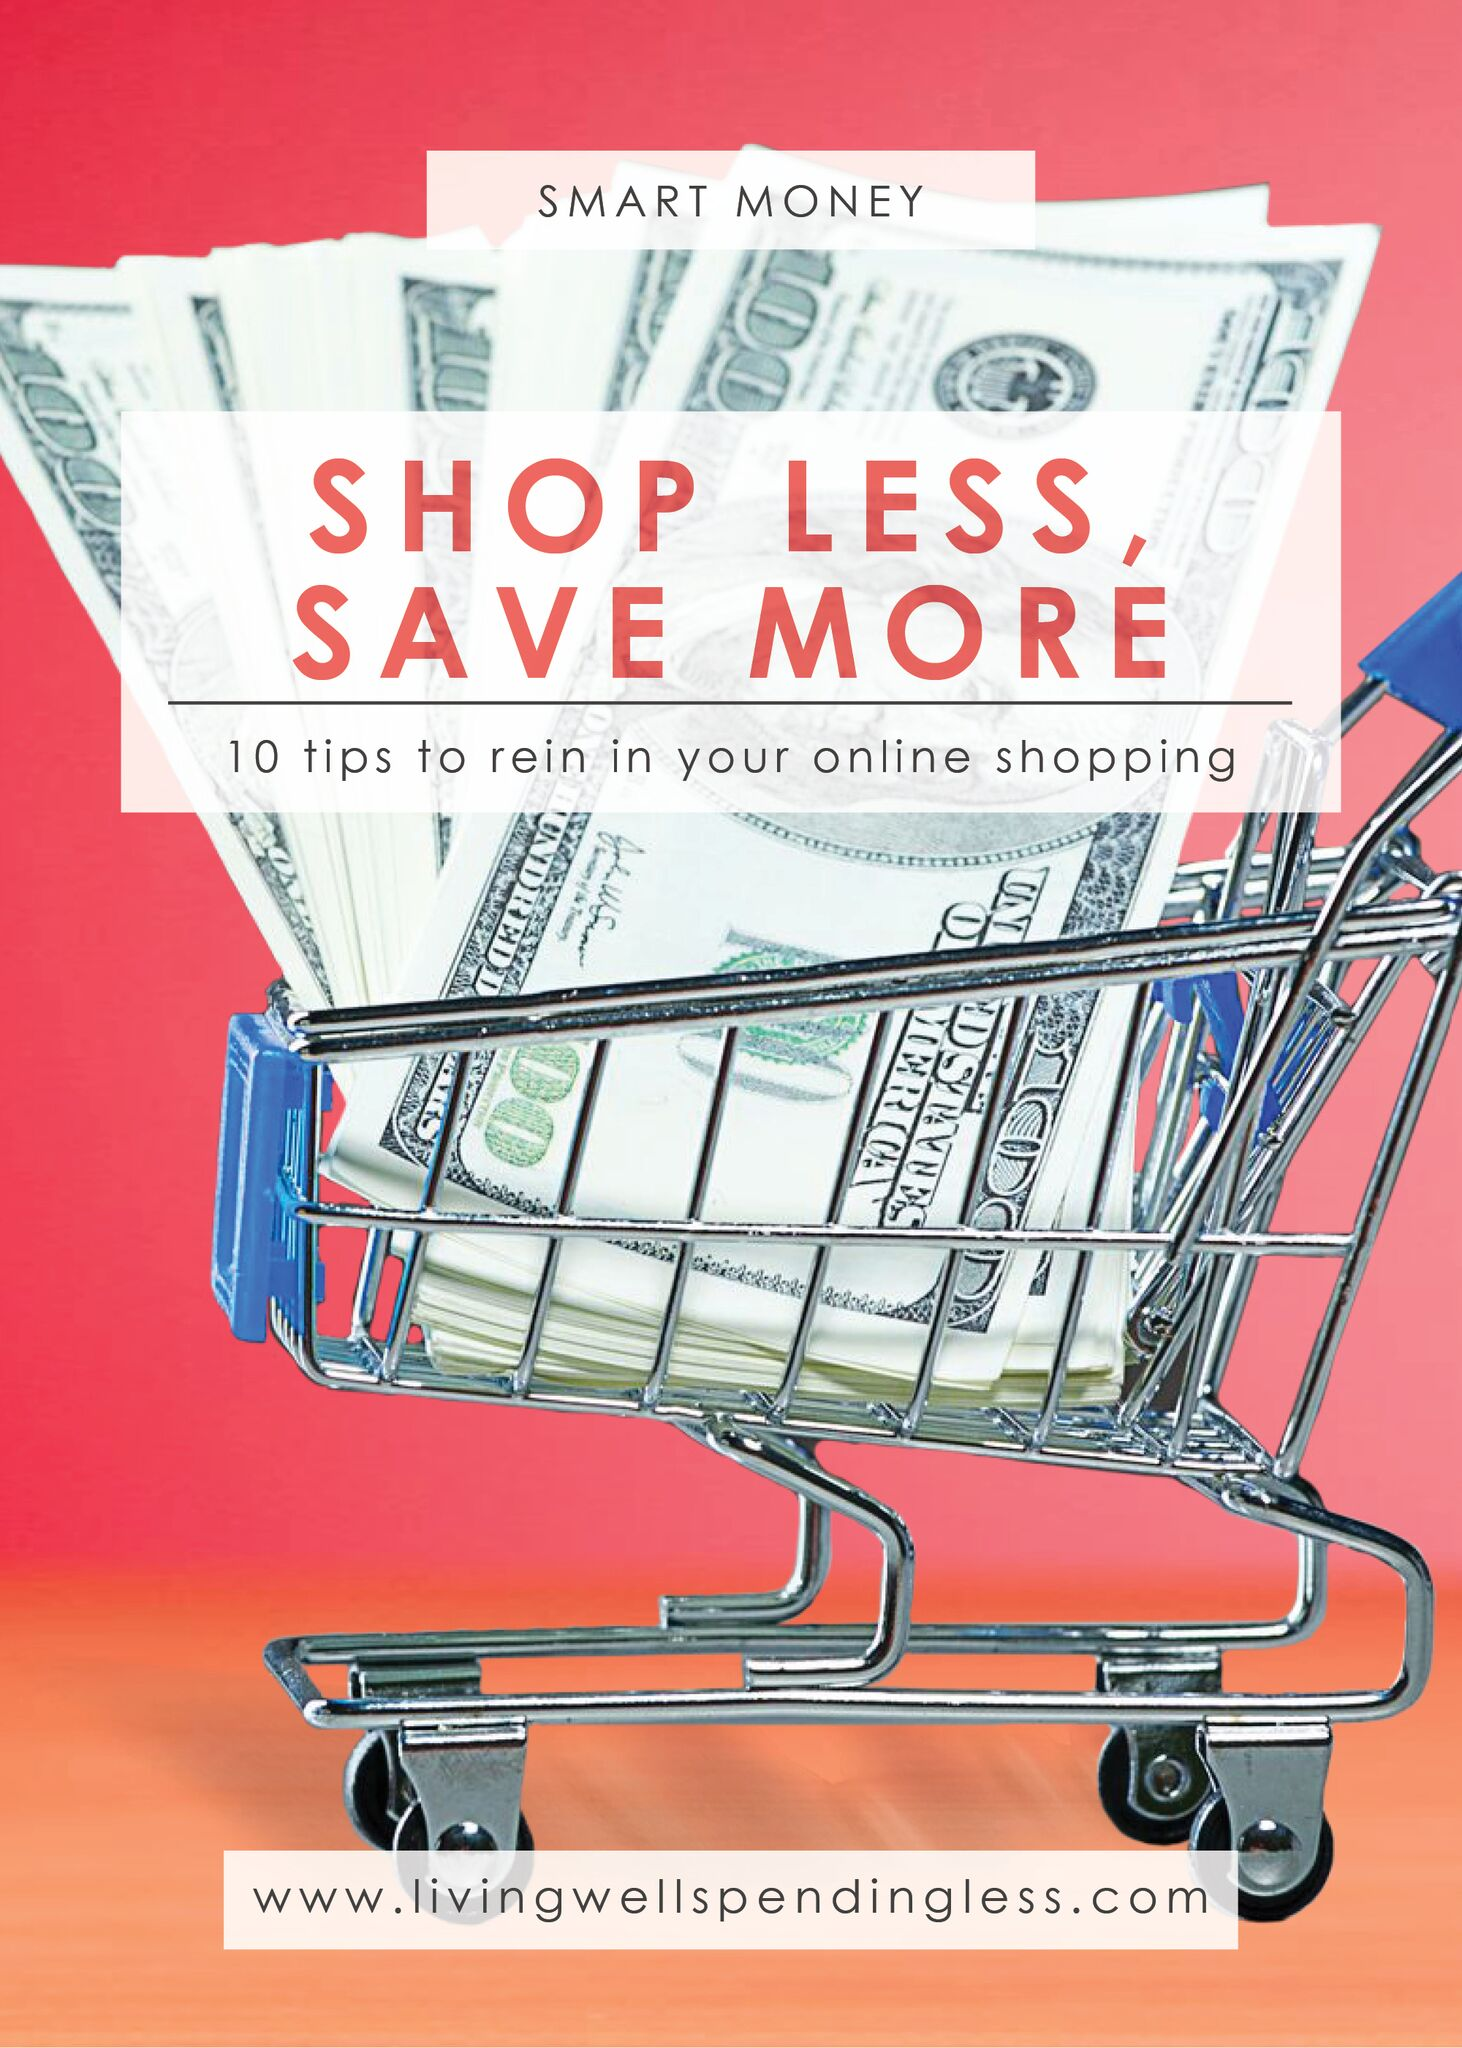 10 Tips To Rein In Your Online Shopping